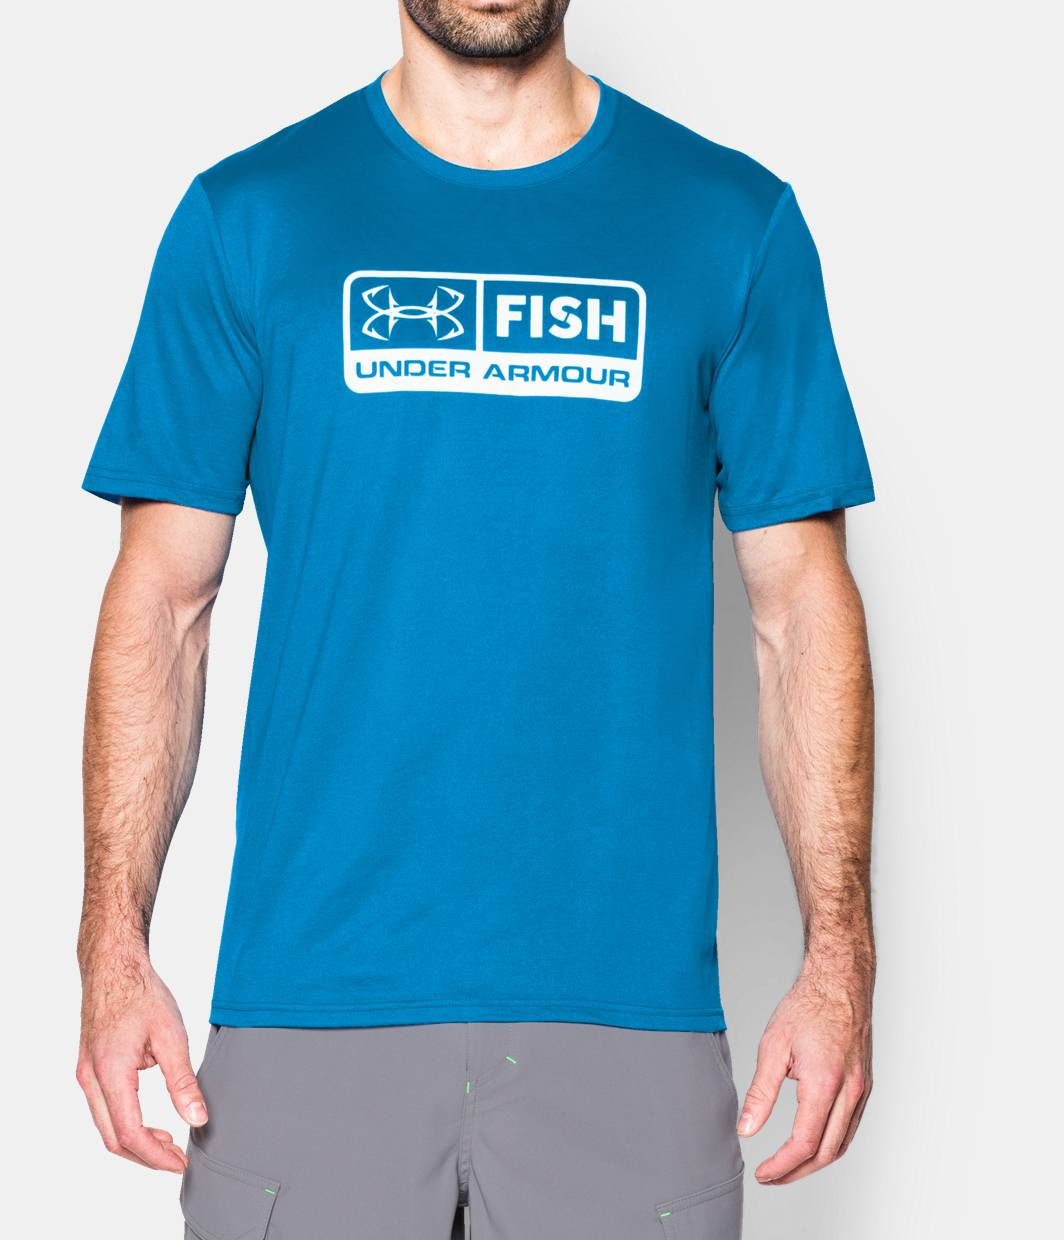 Men s ua fish t shirt under armour us for Under armor fishing shirt